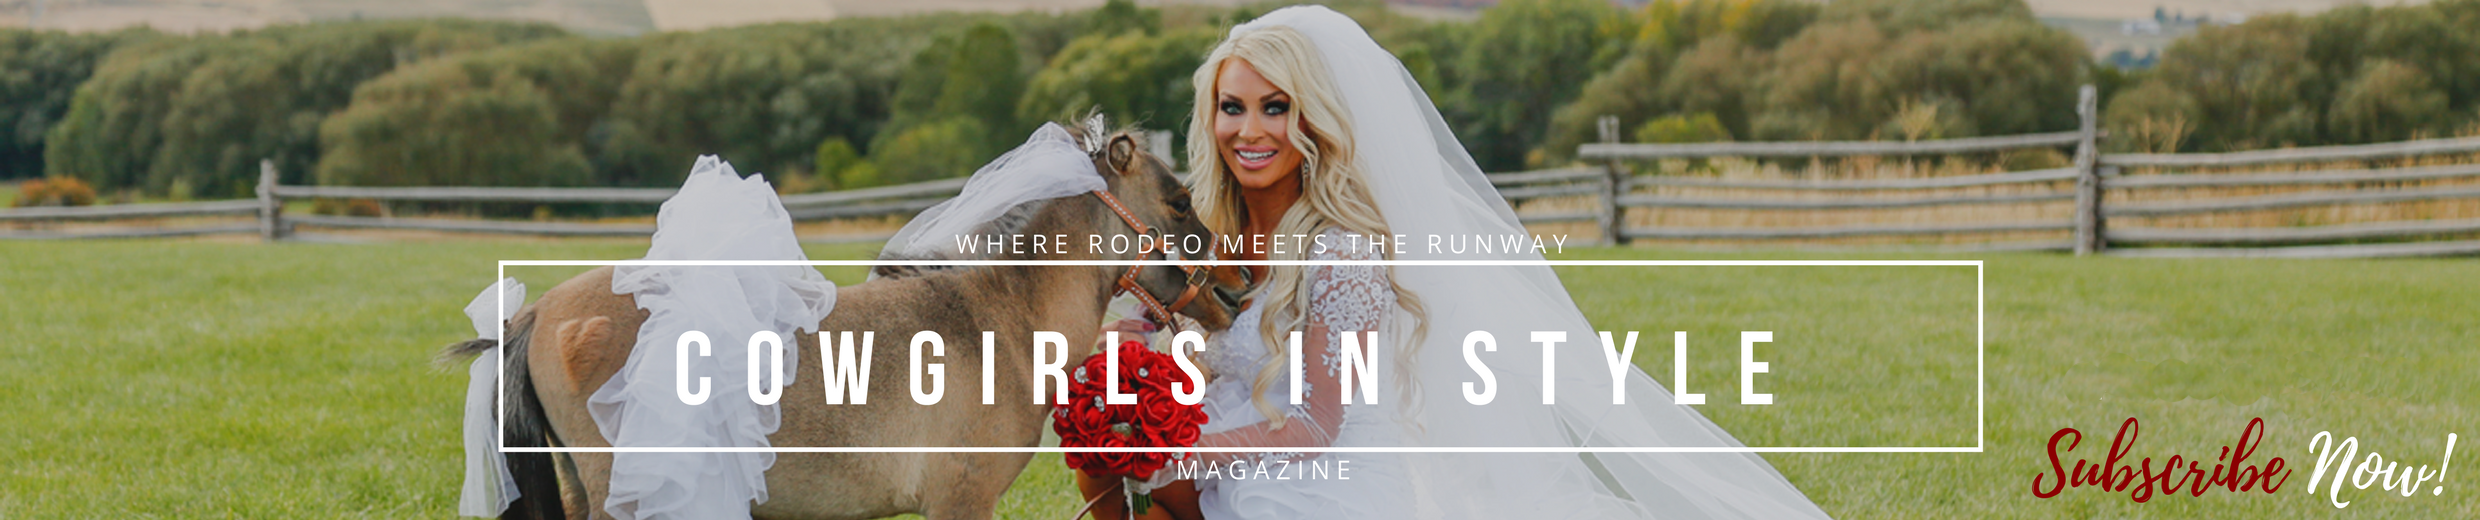 Lifestyle Archives - Cowgirls In Style Magazine